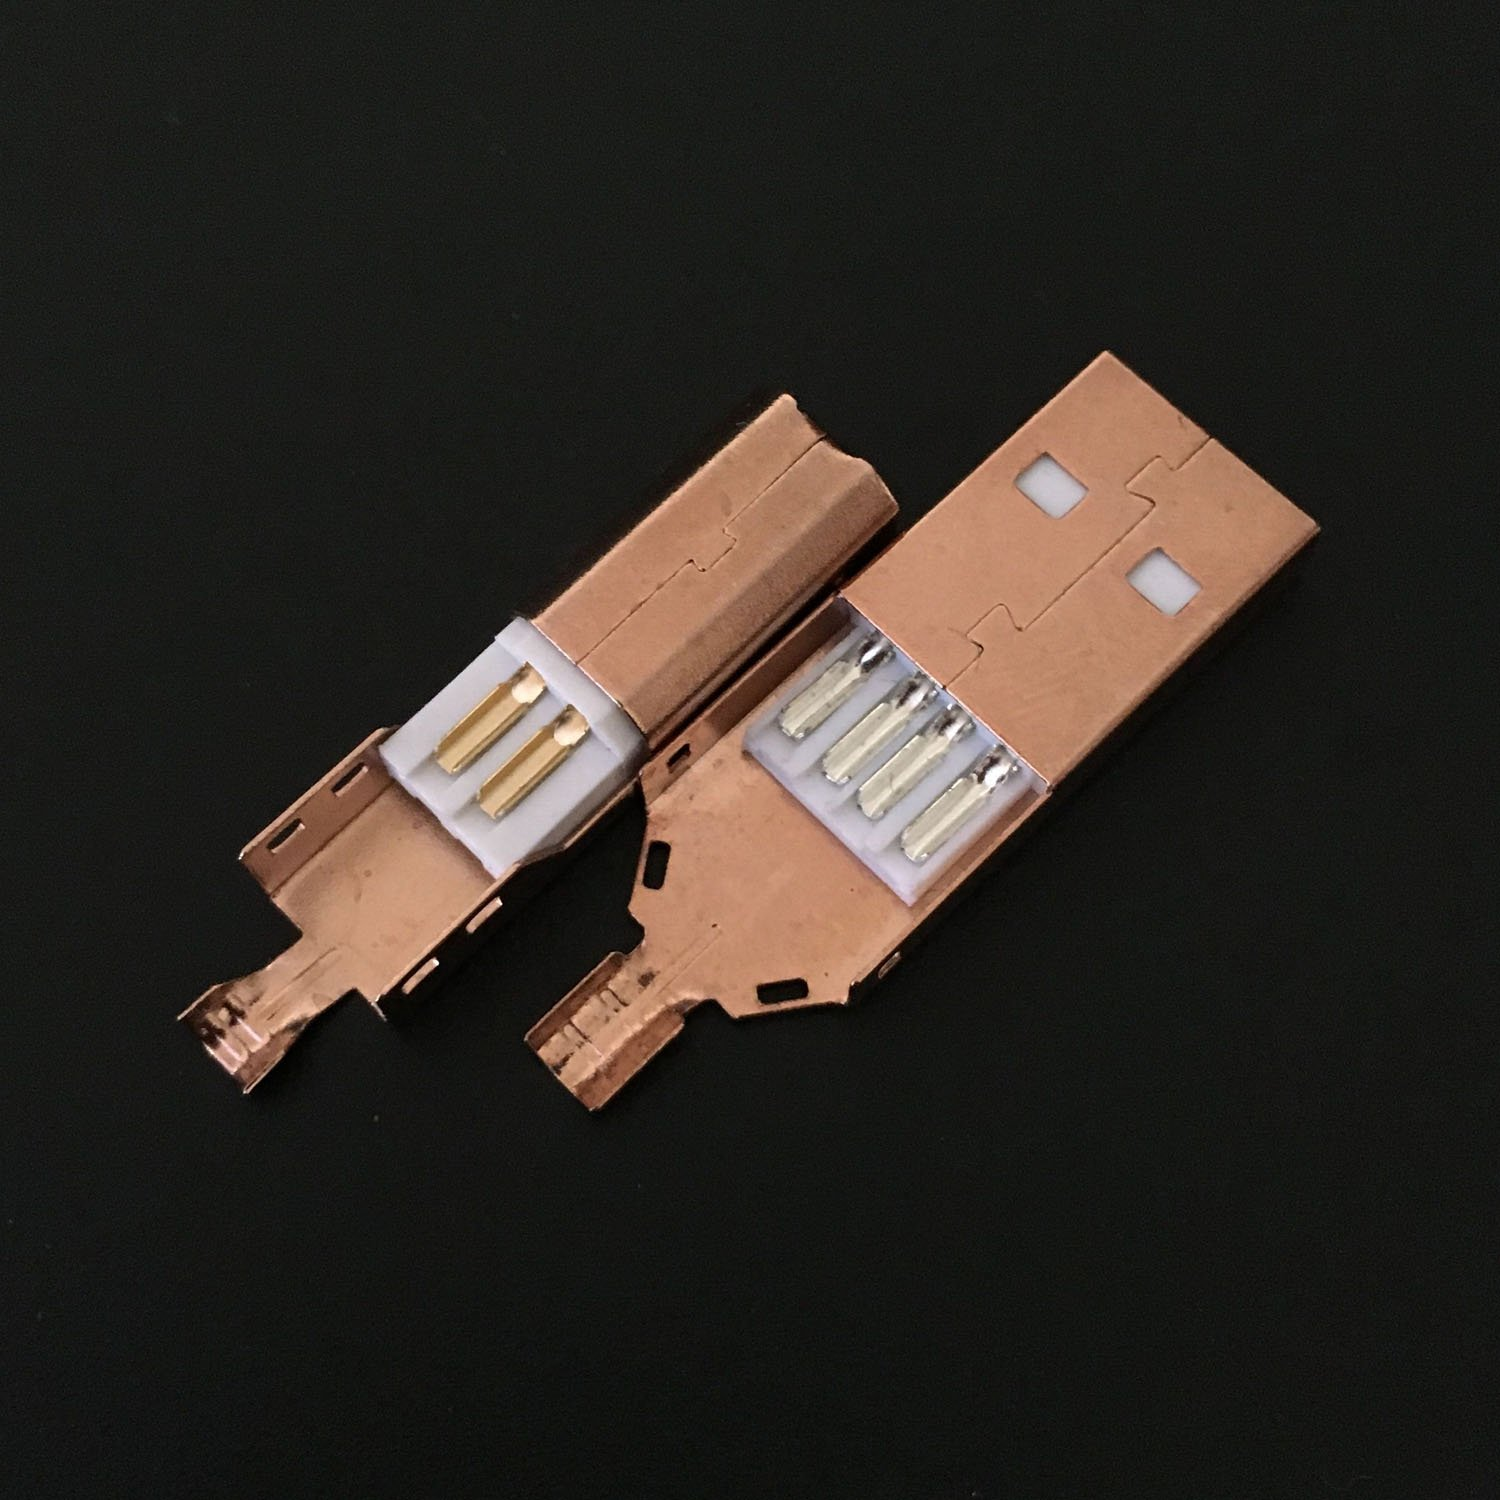 USB 2.0 A Male to B Male Plug Rose Gold Plated Connector Metal Cover Weld Foot